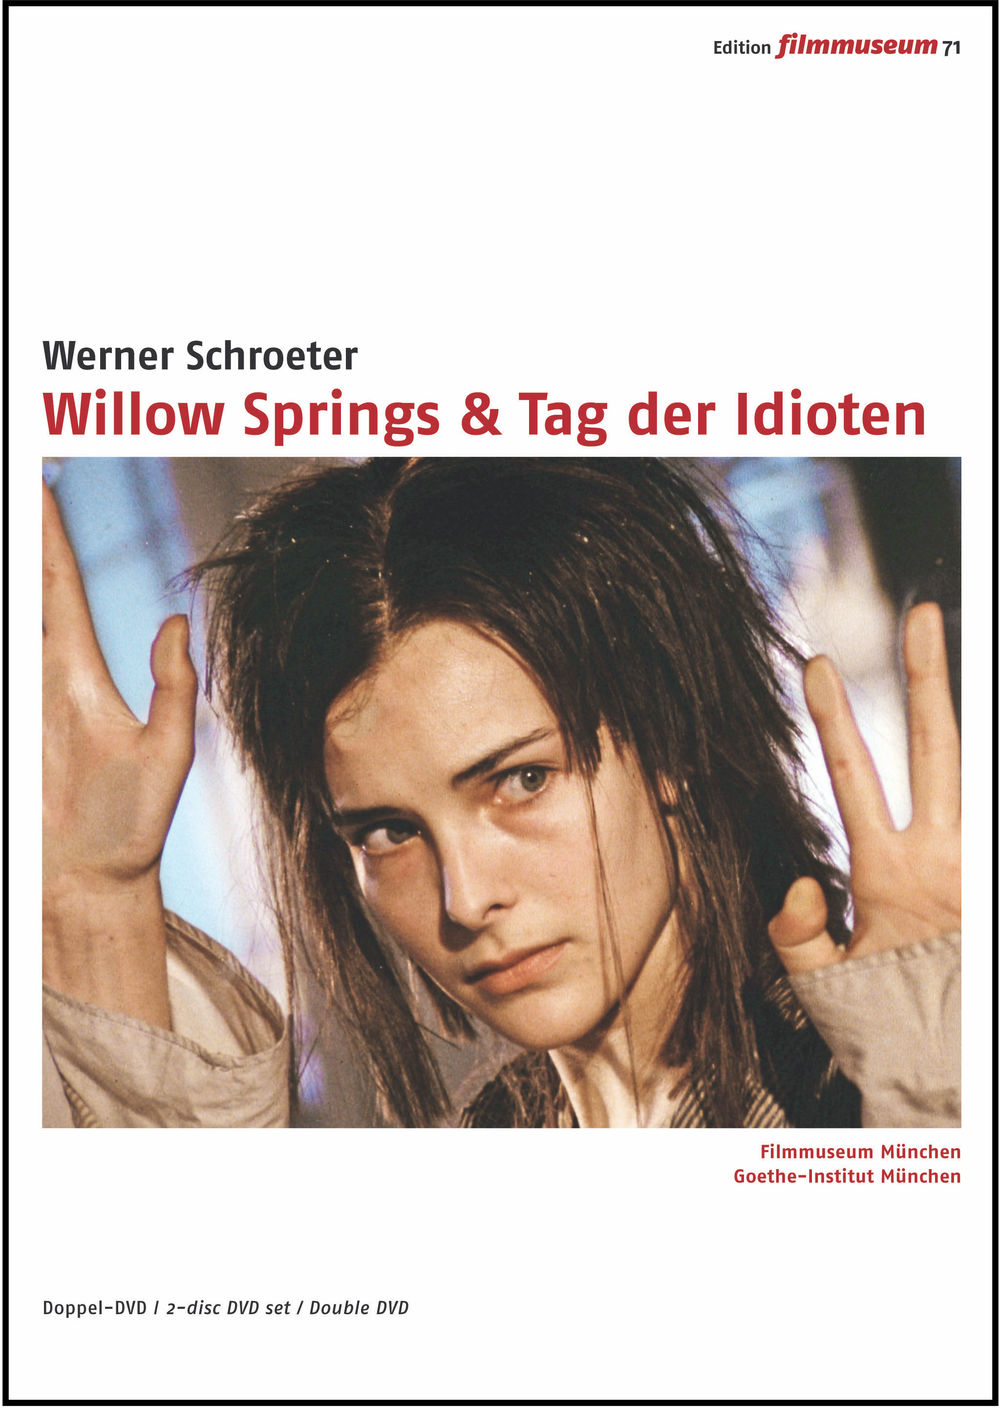 Willow+Springs+Tag+der+Idioten+cover-4.jpg